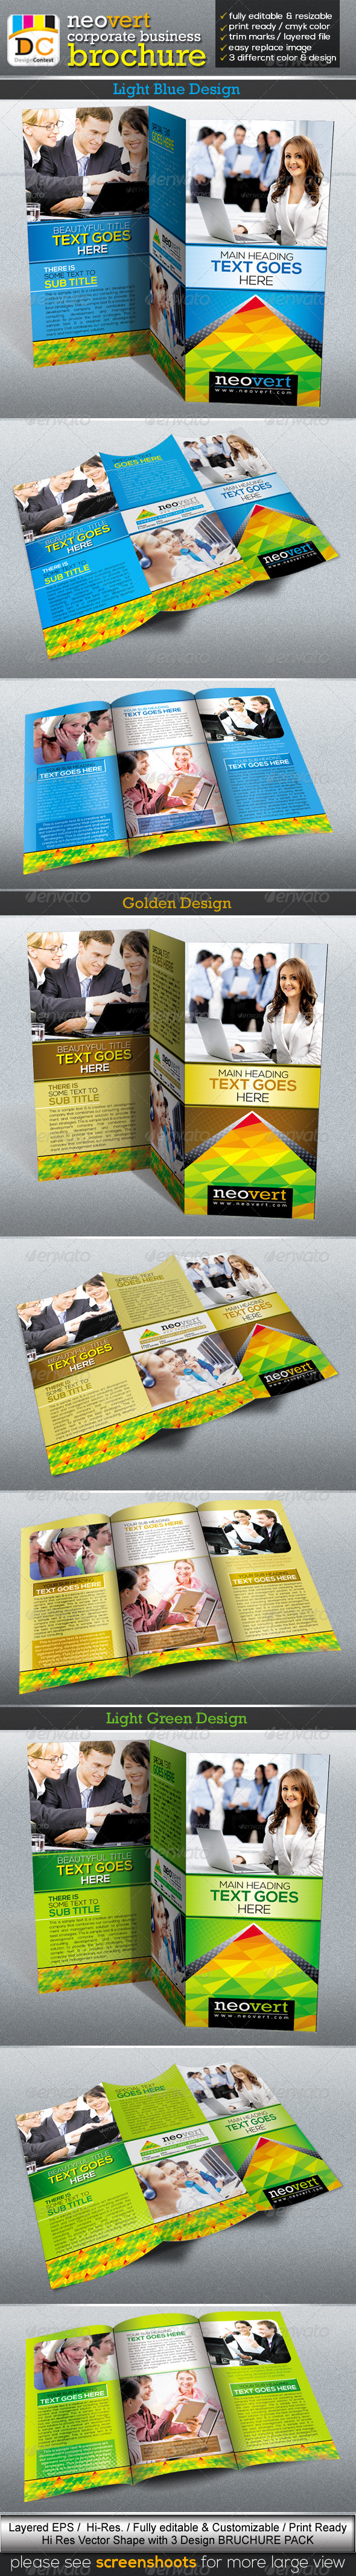 NeoVert Tri-fold Corporate Business Brochure - Corporate Brochures